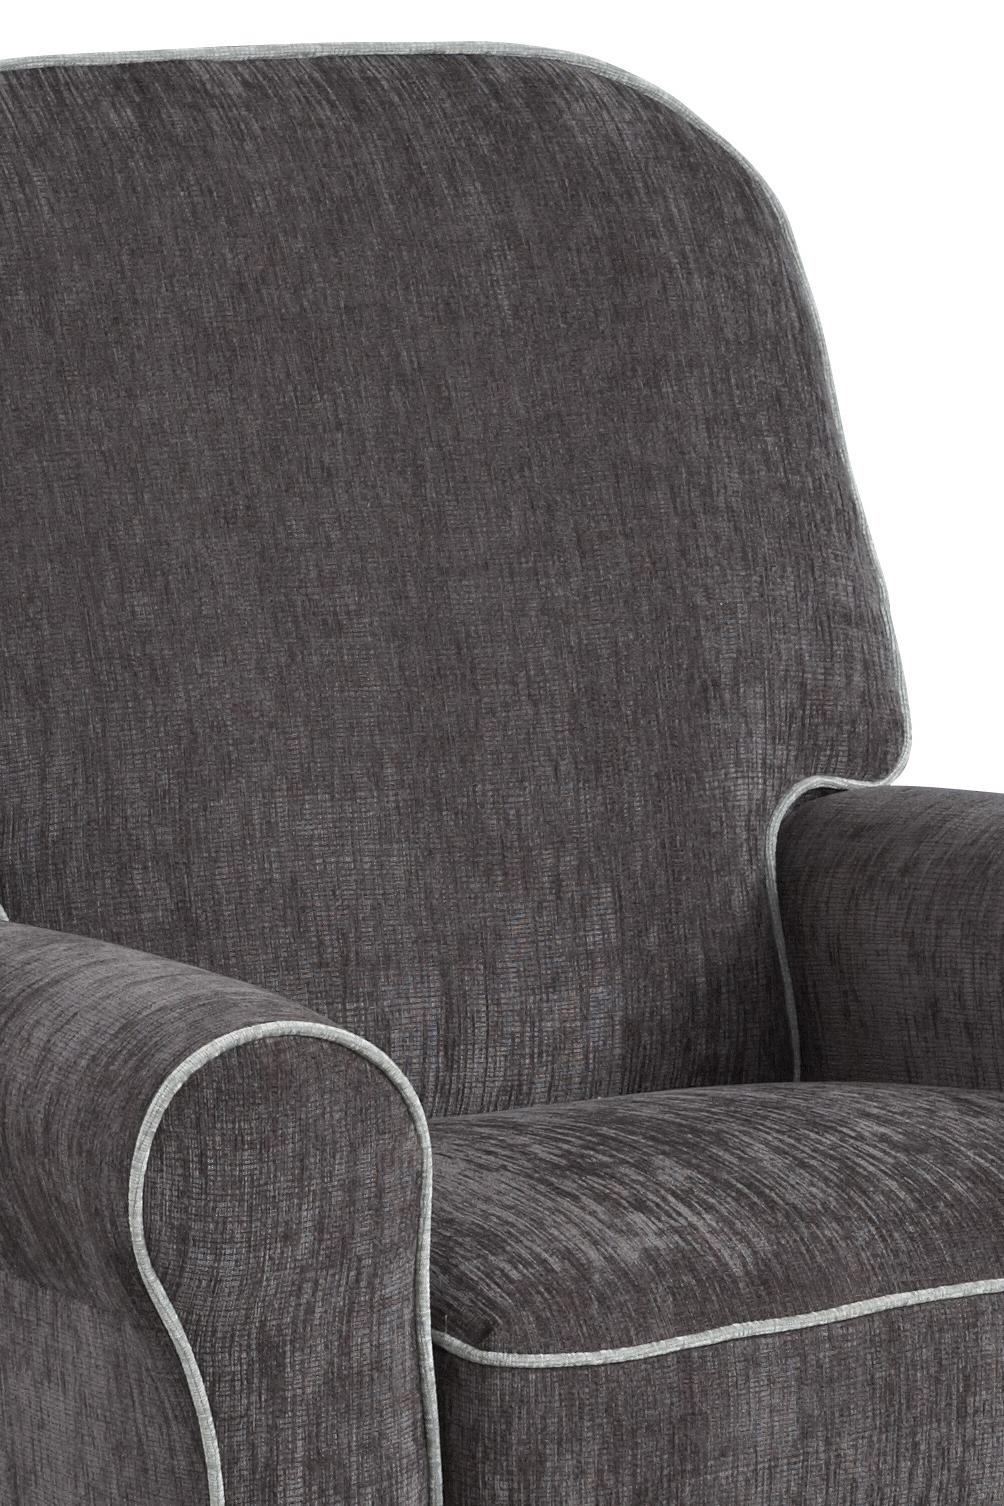 Wonderful Best Chairs Storytime Series Storytime Recliners Irvington Swivel Glider  Recliner With Large Rolled Arms | Bullard Furniture | Three Way Recliner ...